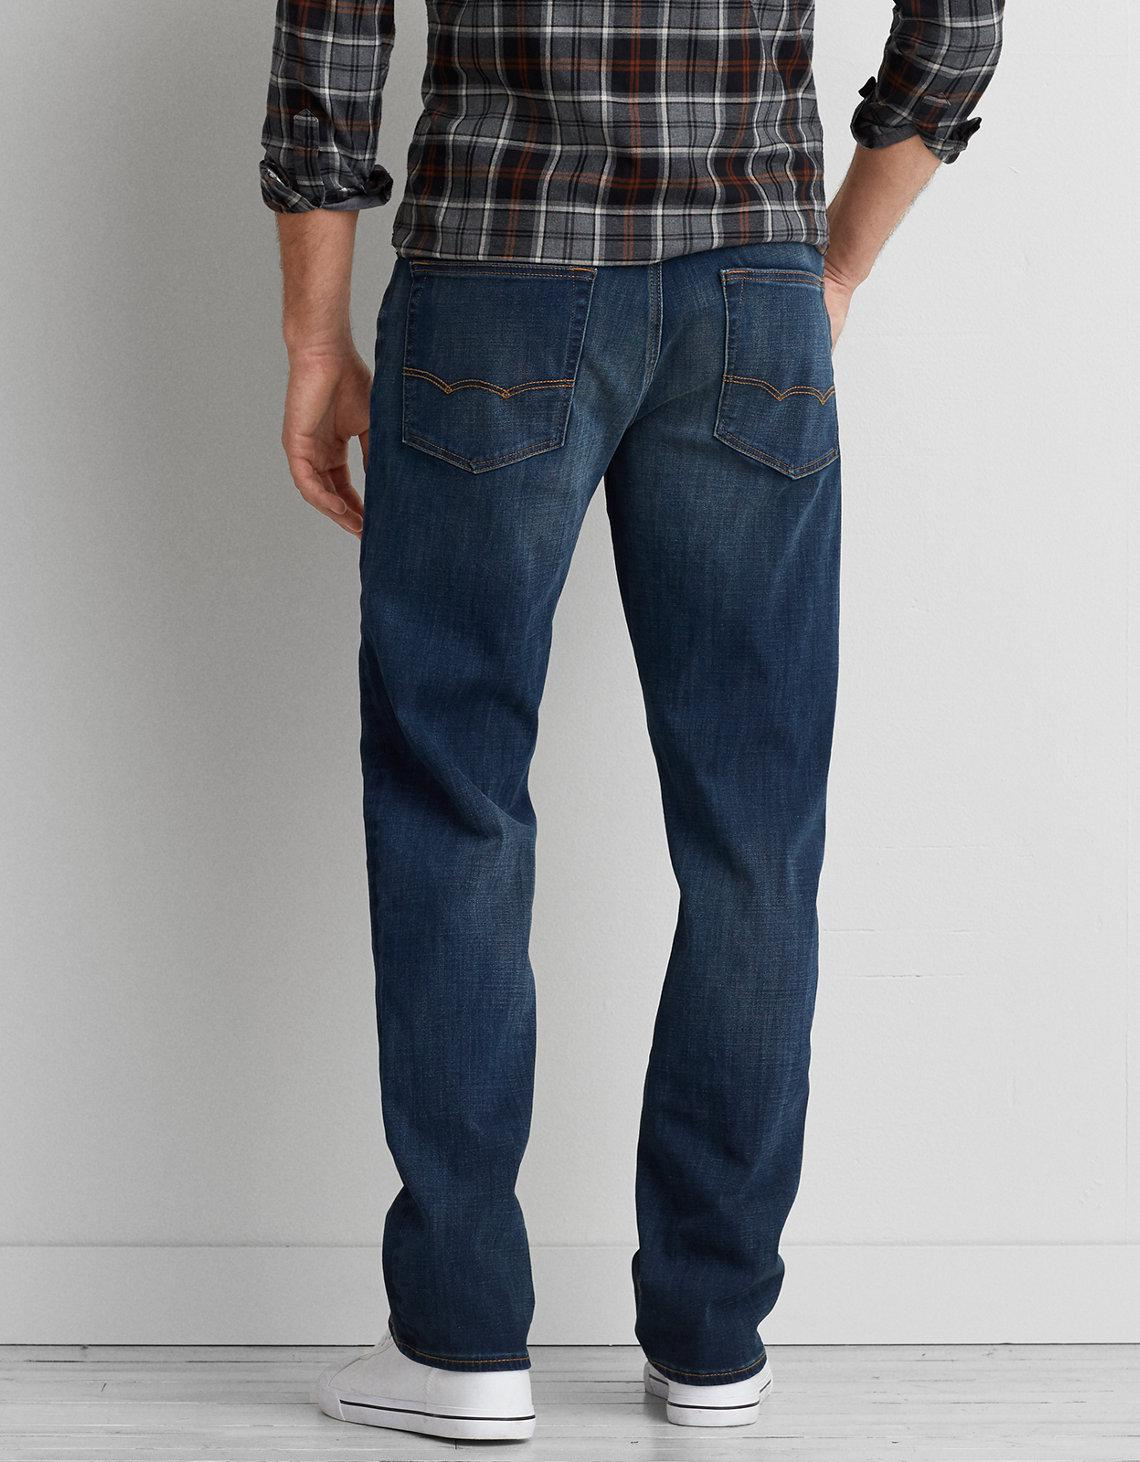 American Eagle Blue 360 Extreme Flex Relaxed Straight Jean for men